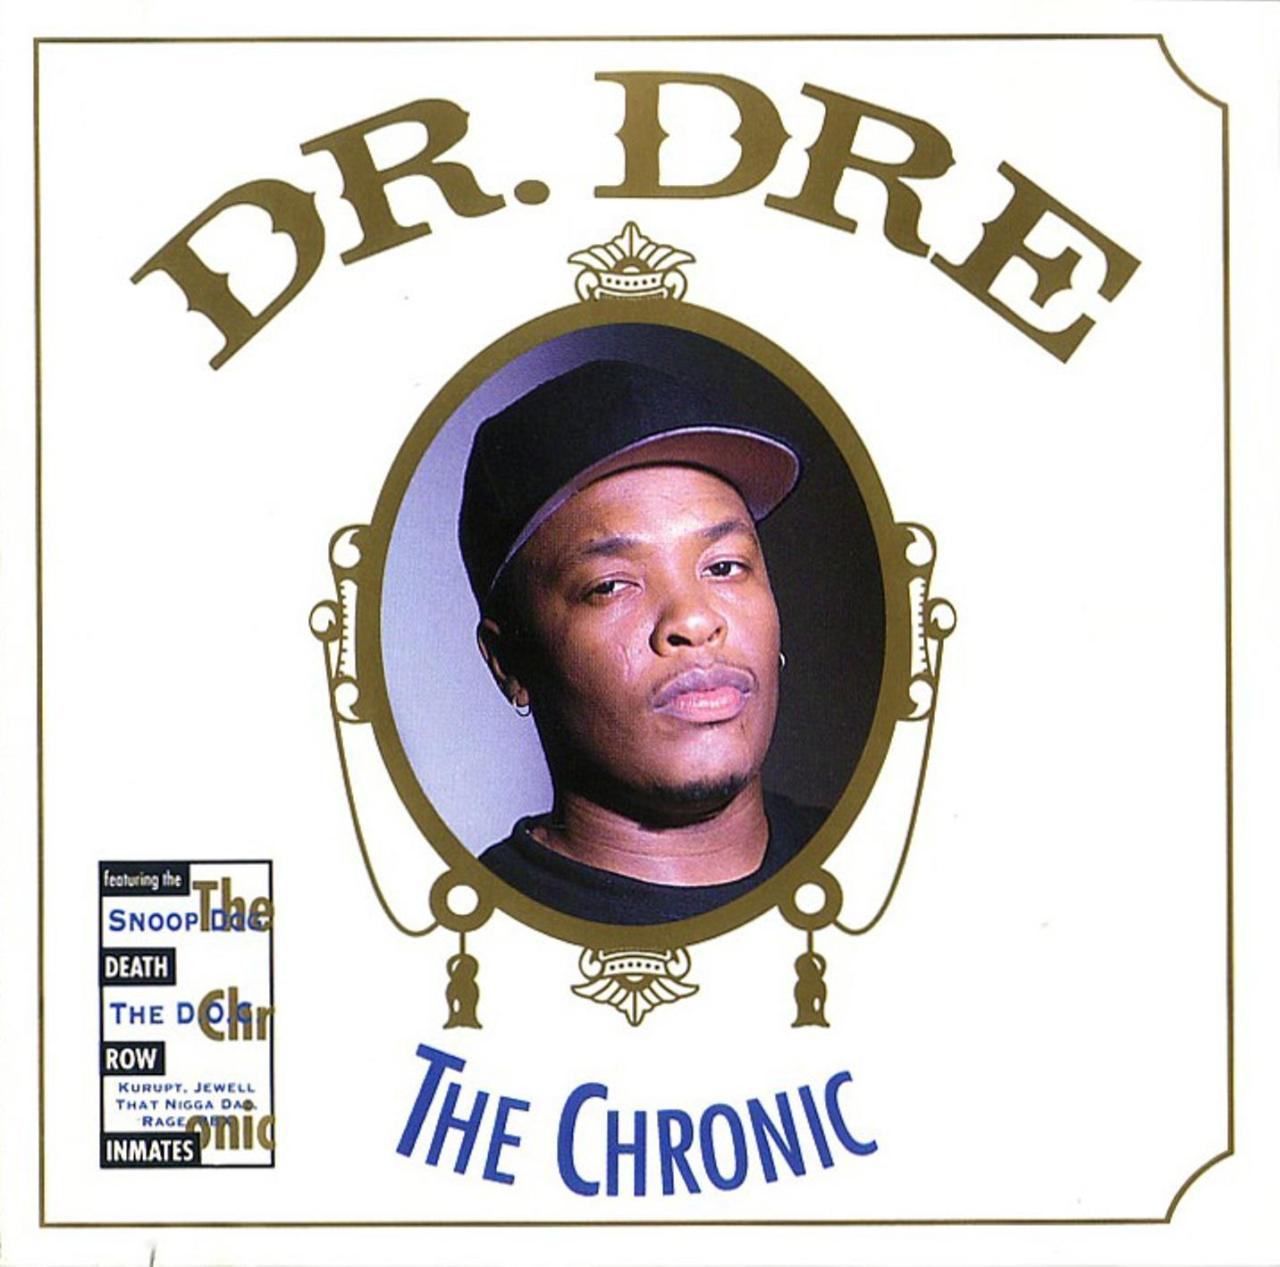 20 YEARS AGO TODAY |12/15/92| Dr. Dre released his debut album, The Chronic, on Death Row Records.